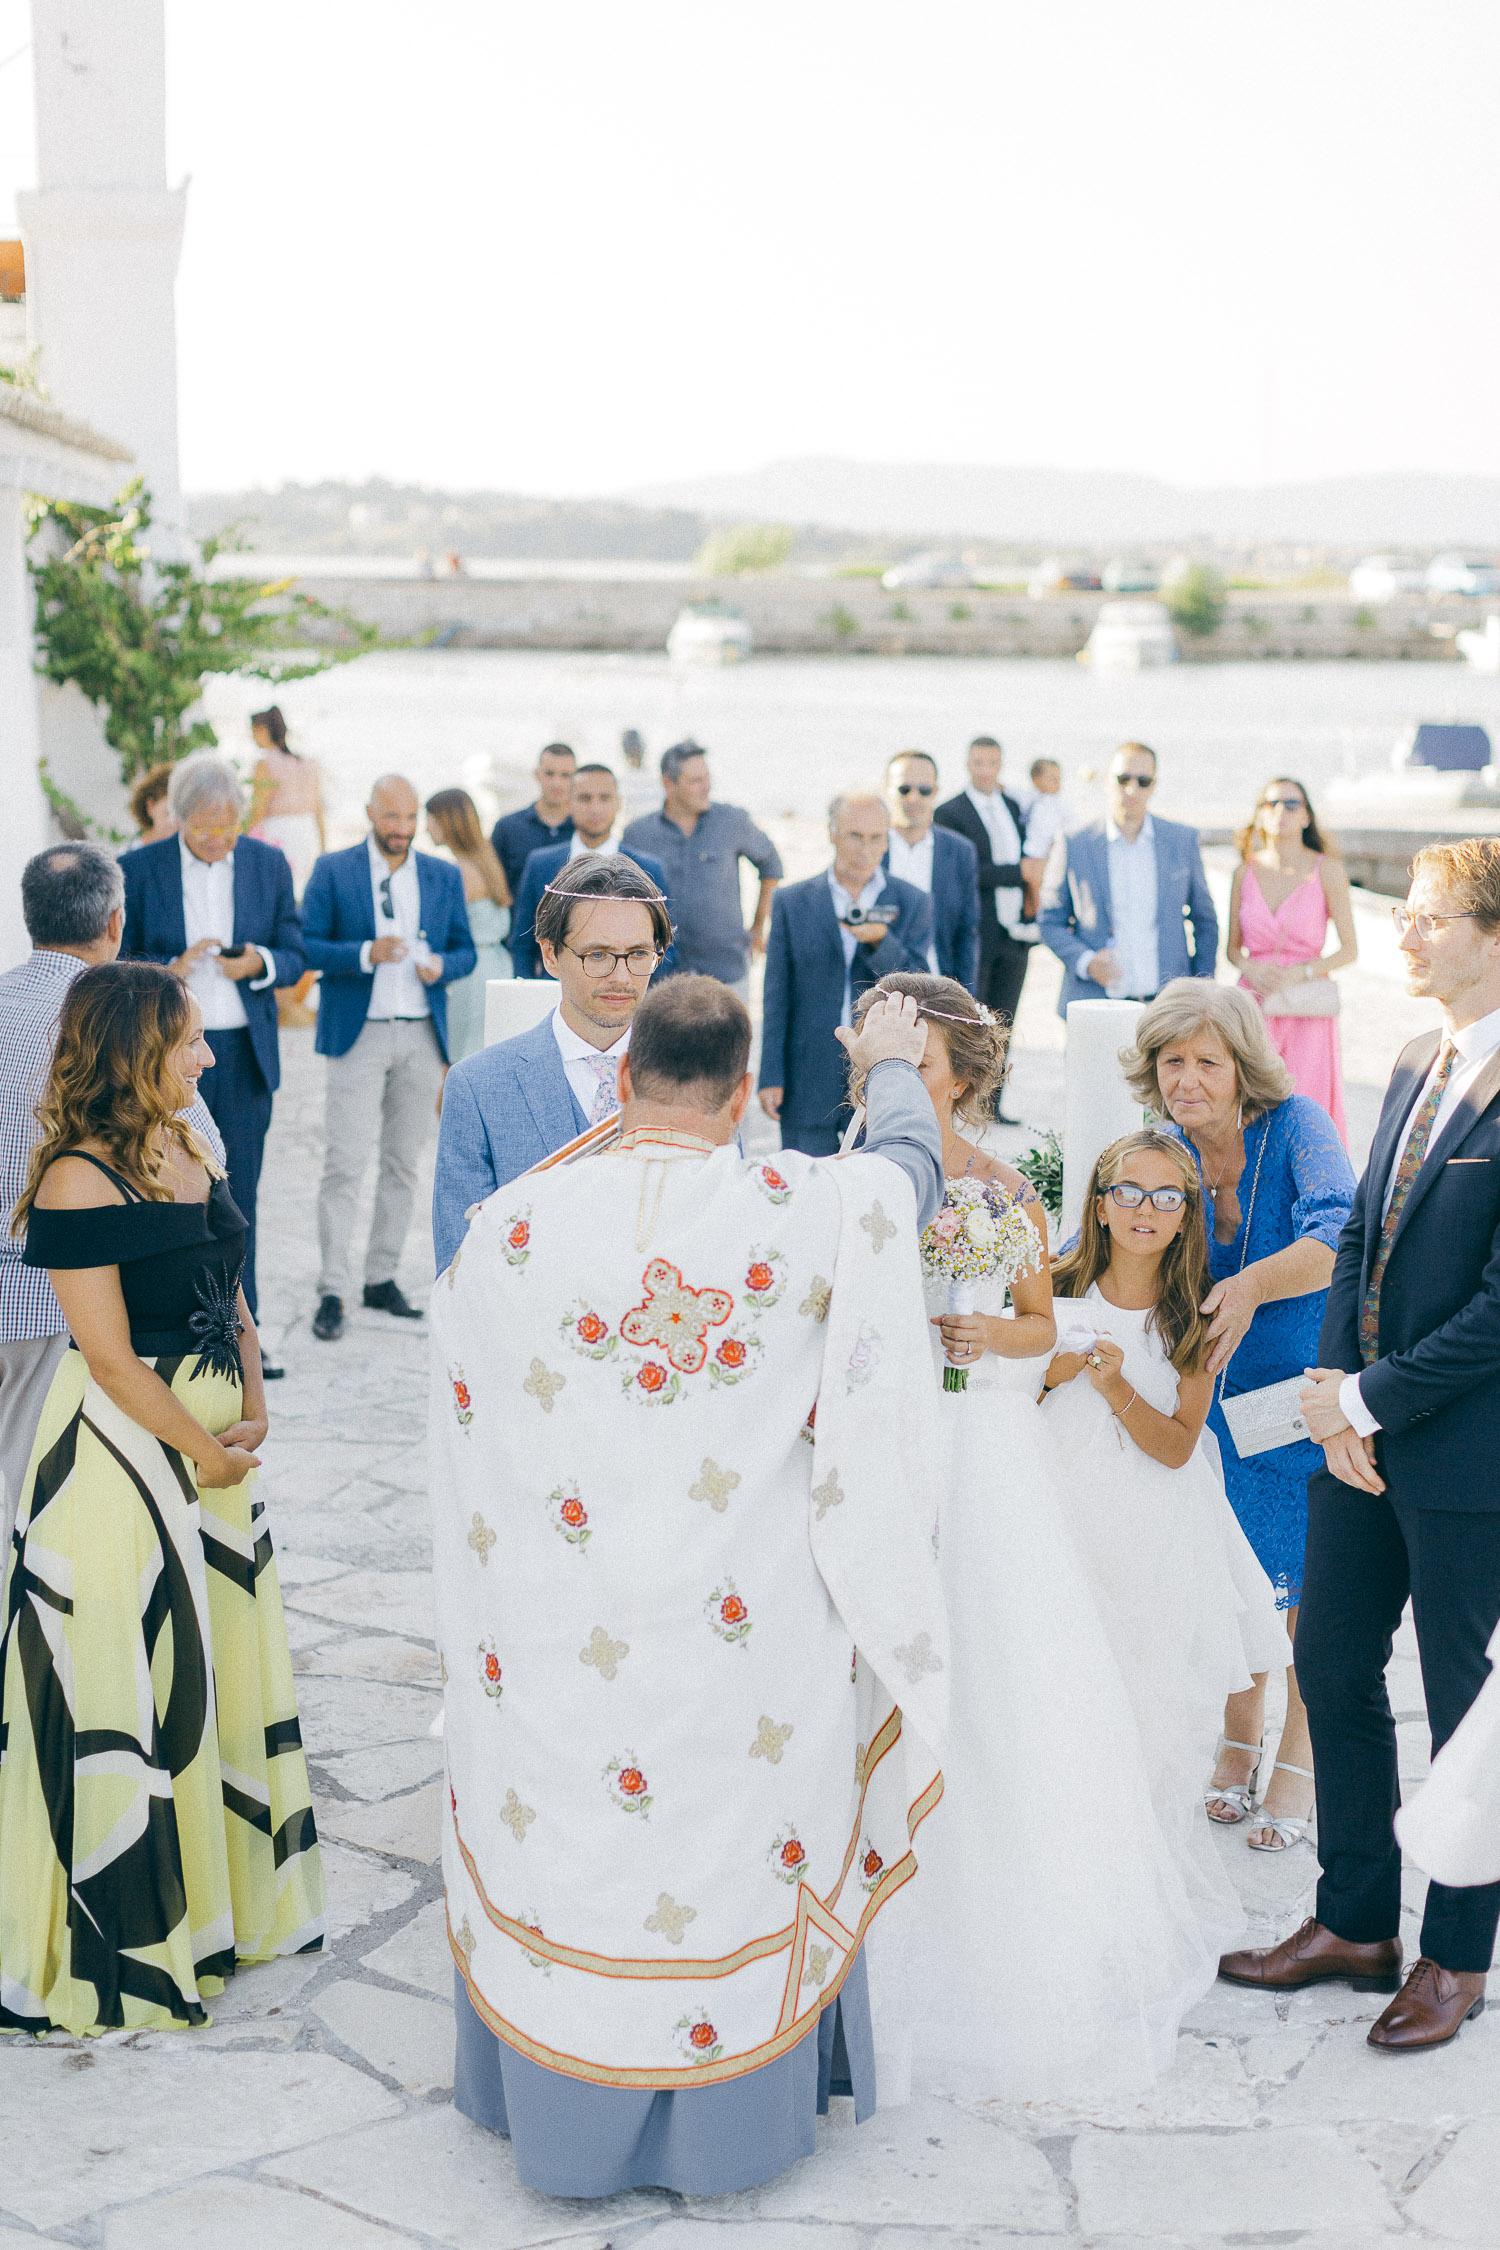 Bride and groom while on wedding ceremony while an Old World micro wedding in Corfu Island